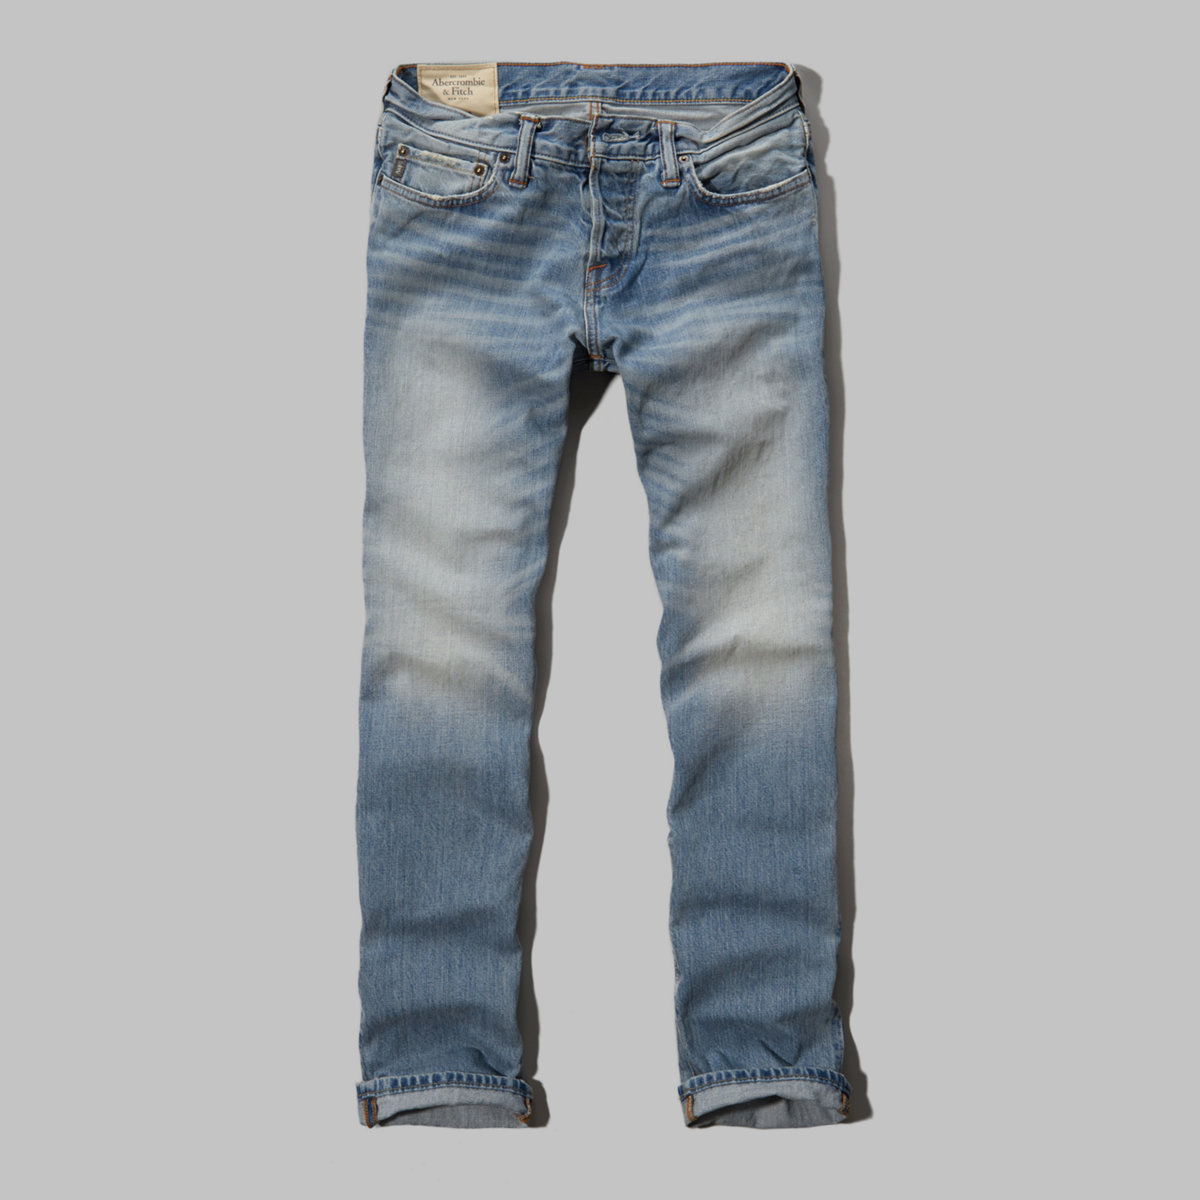 A&F Slim Straight Button Fly Jeans